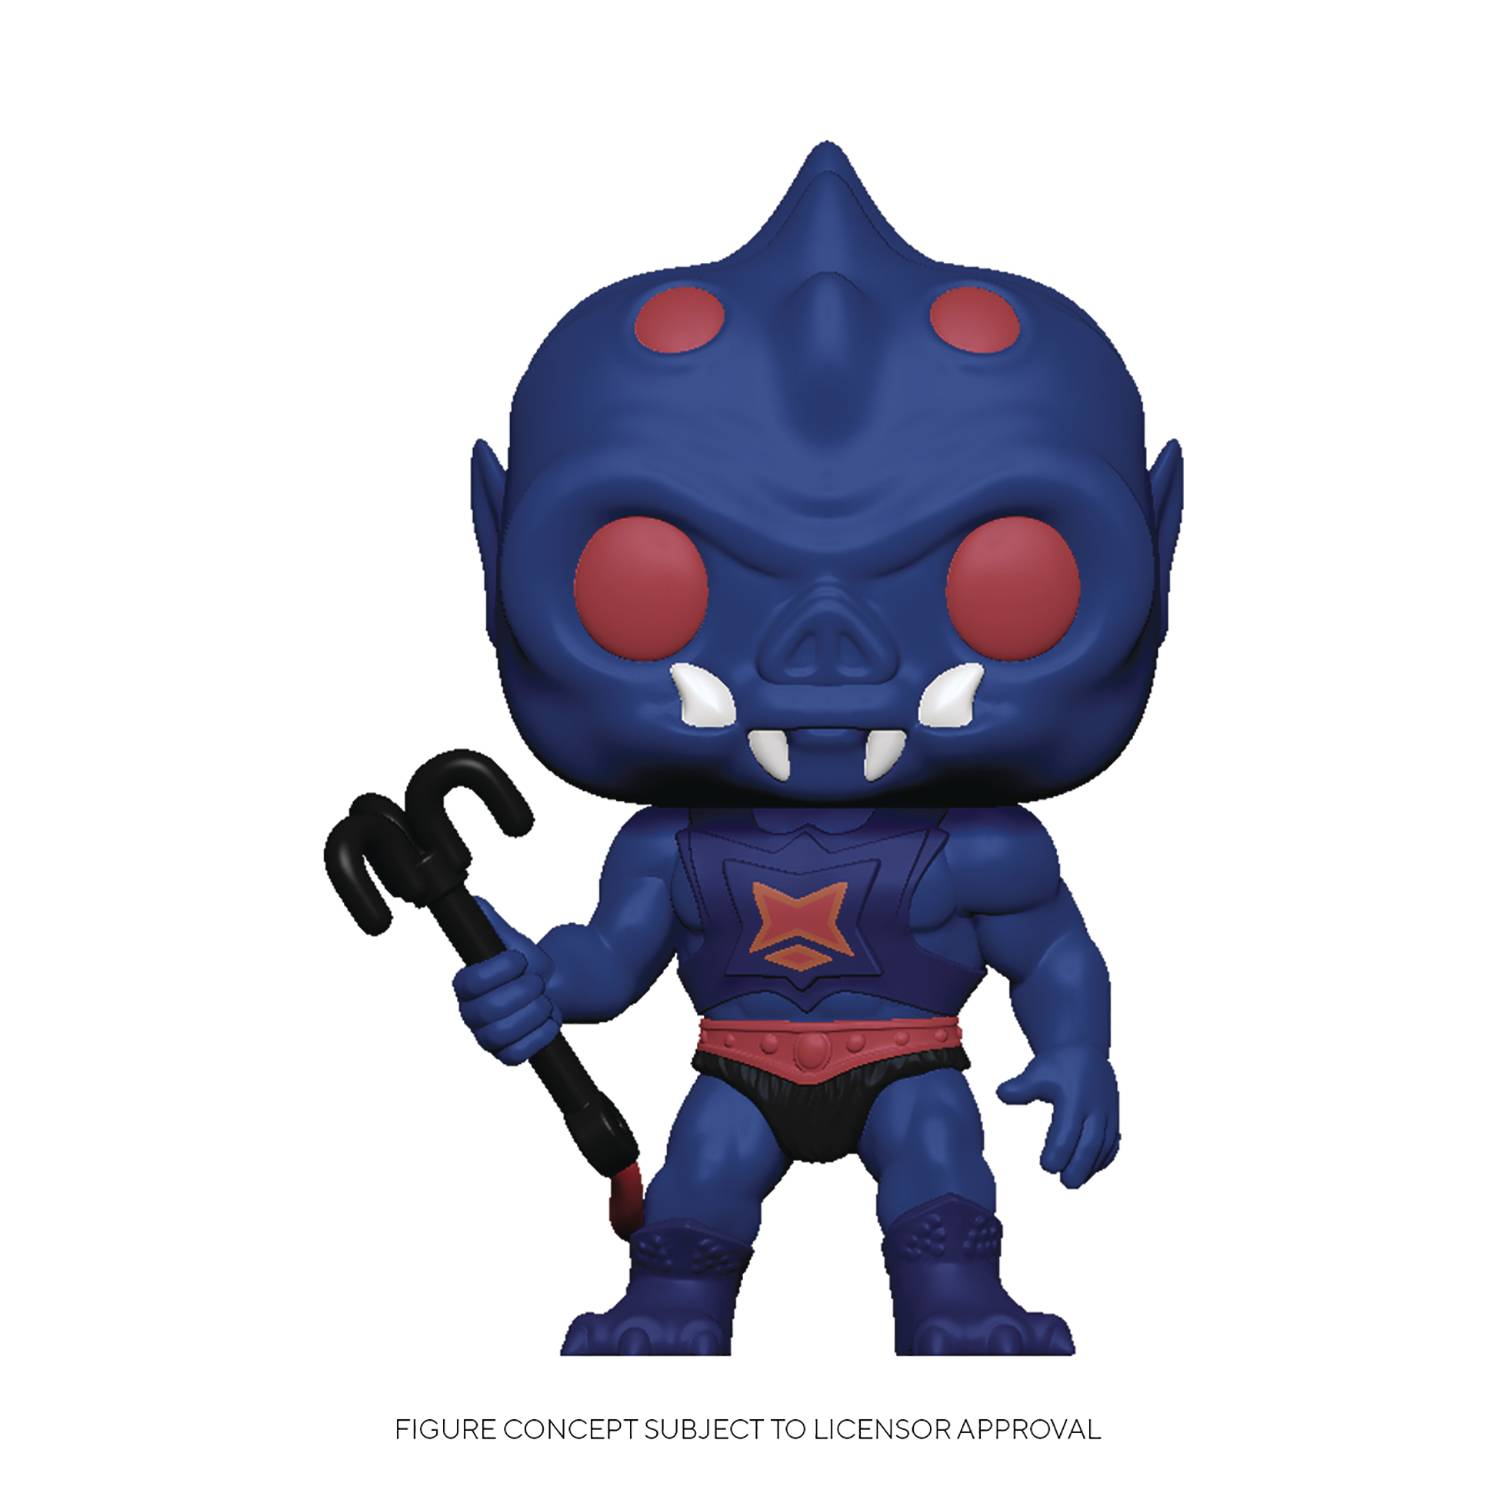 POP ANIMATION MOTU WEBSTOR VINYL FIGURE